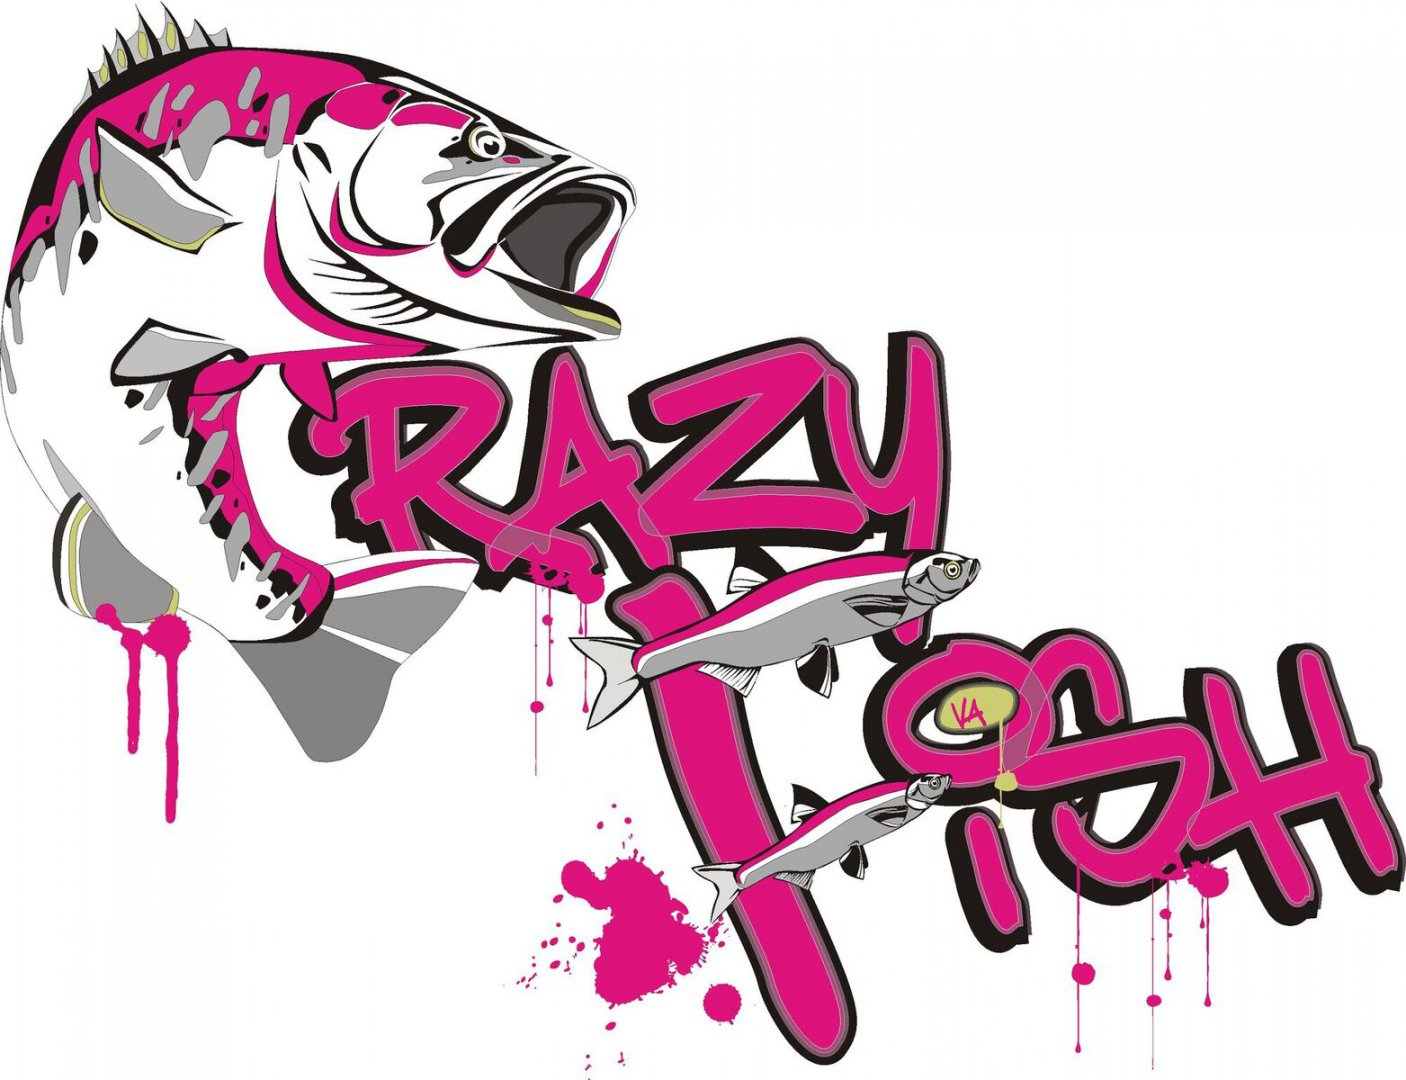 logo CRAZY FISH original_preview.jpeg